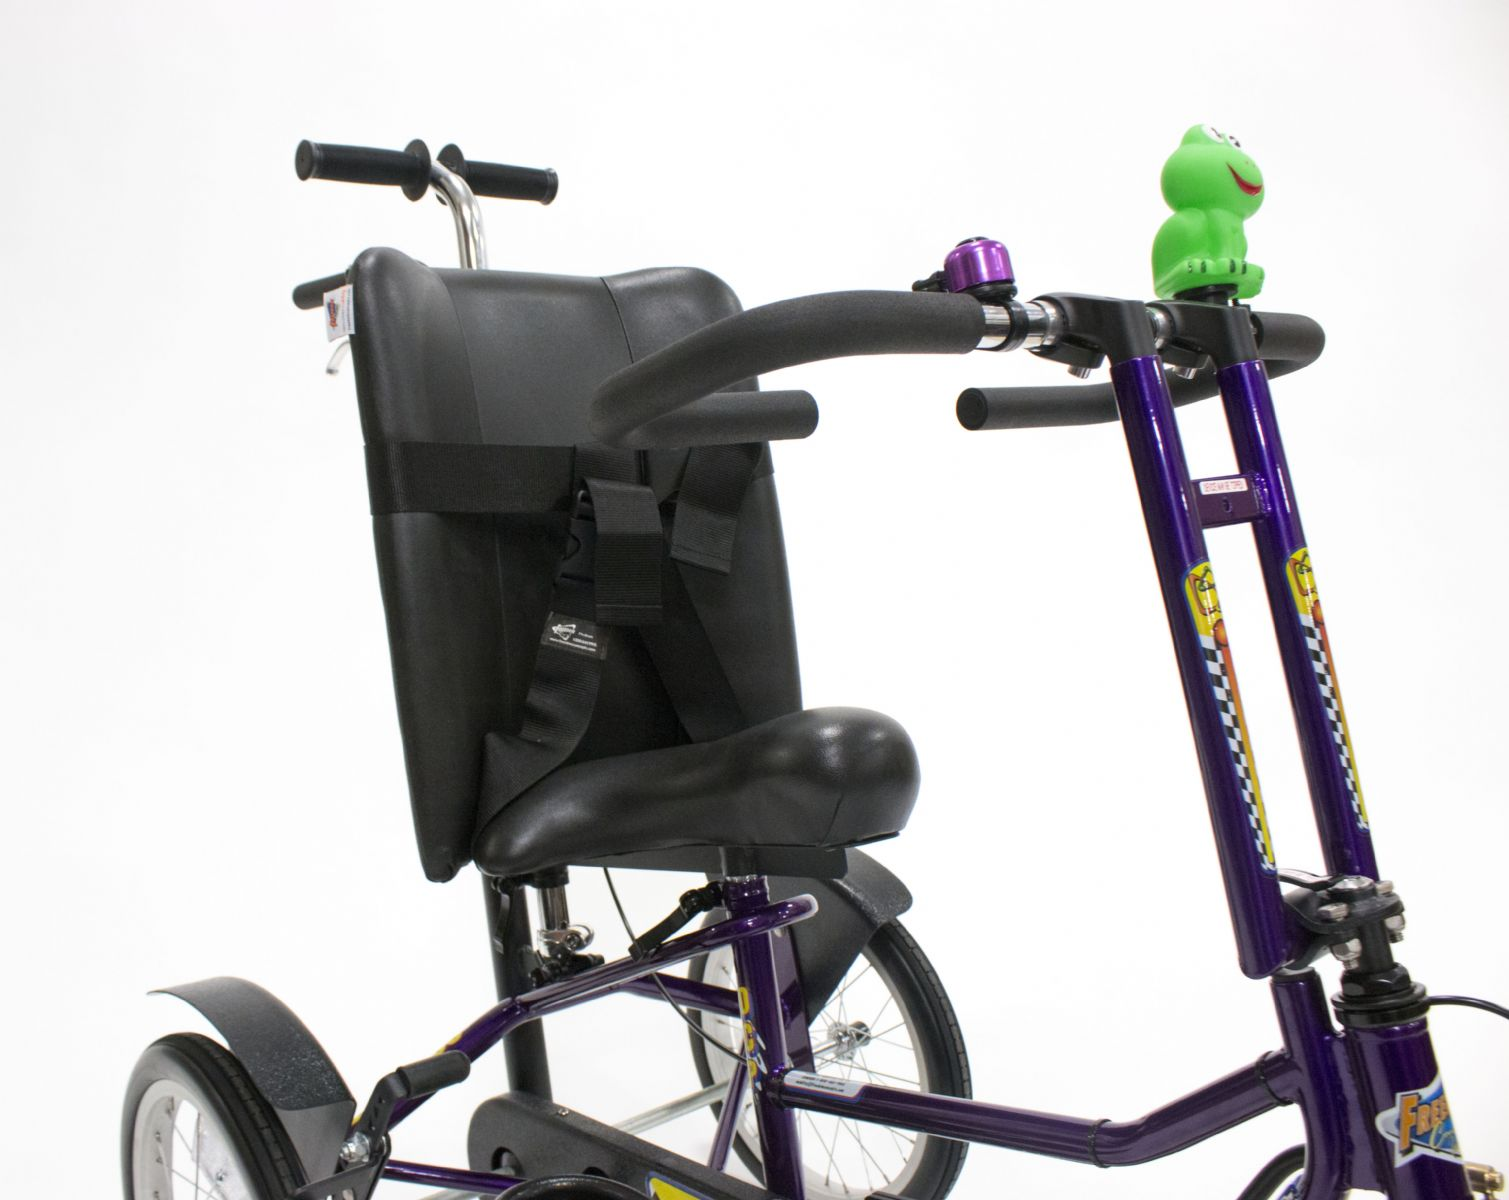 33ad52a2866 Freedom Concepts Discovery Series DCP 16 Pediatric Trike